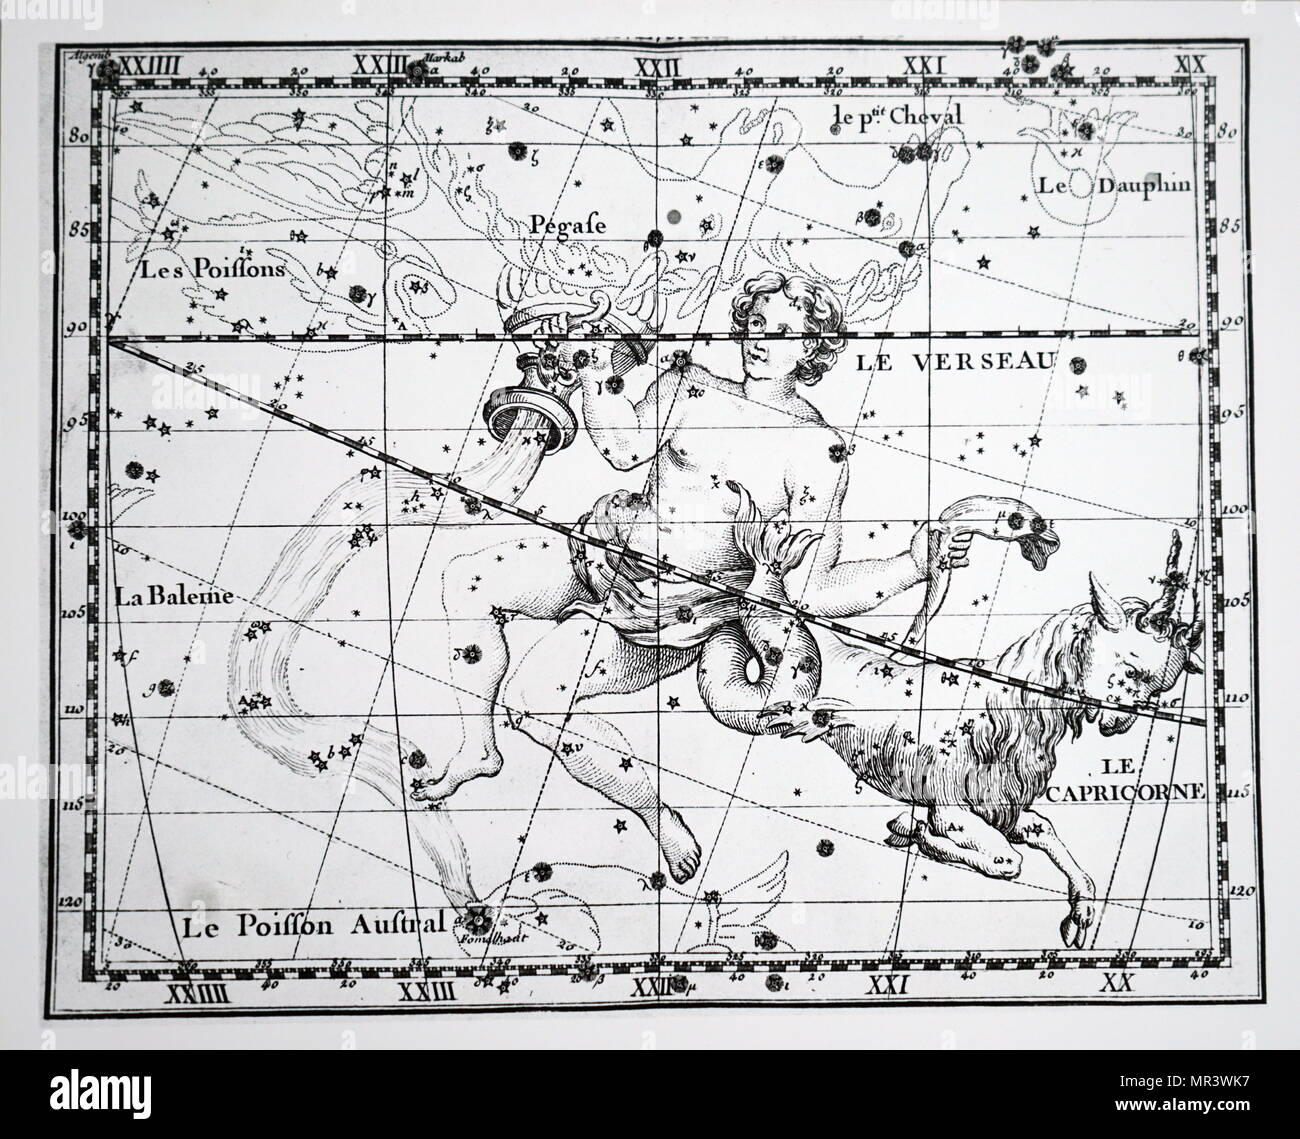 Chart showing the constellation of Aquarius and Capricorn. Dated 18th century - Stock Image